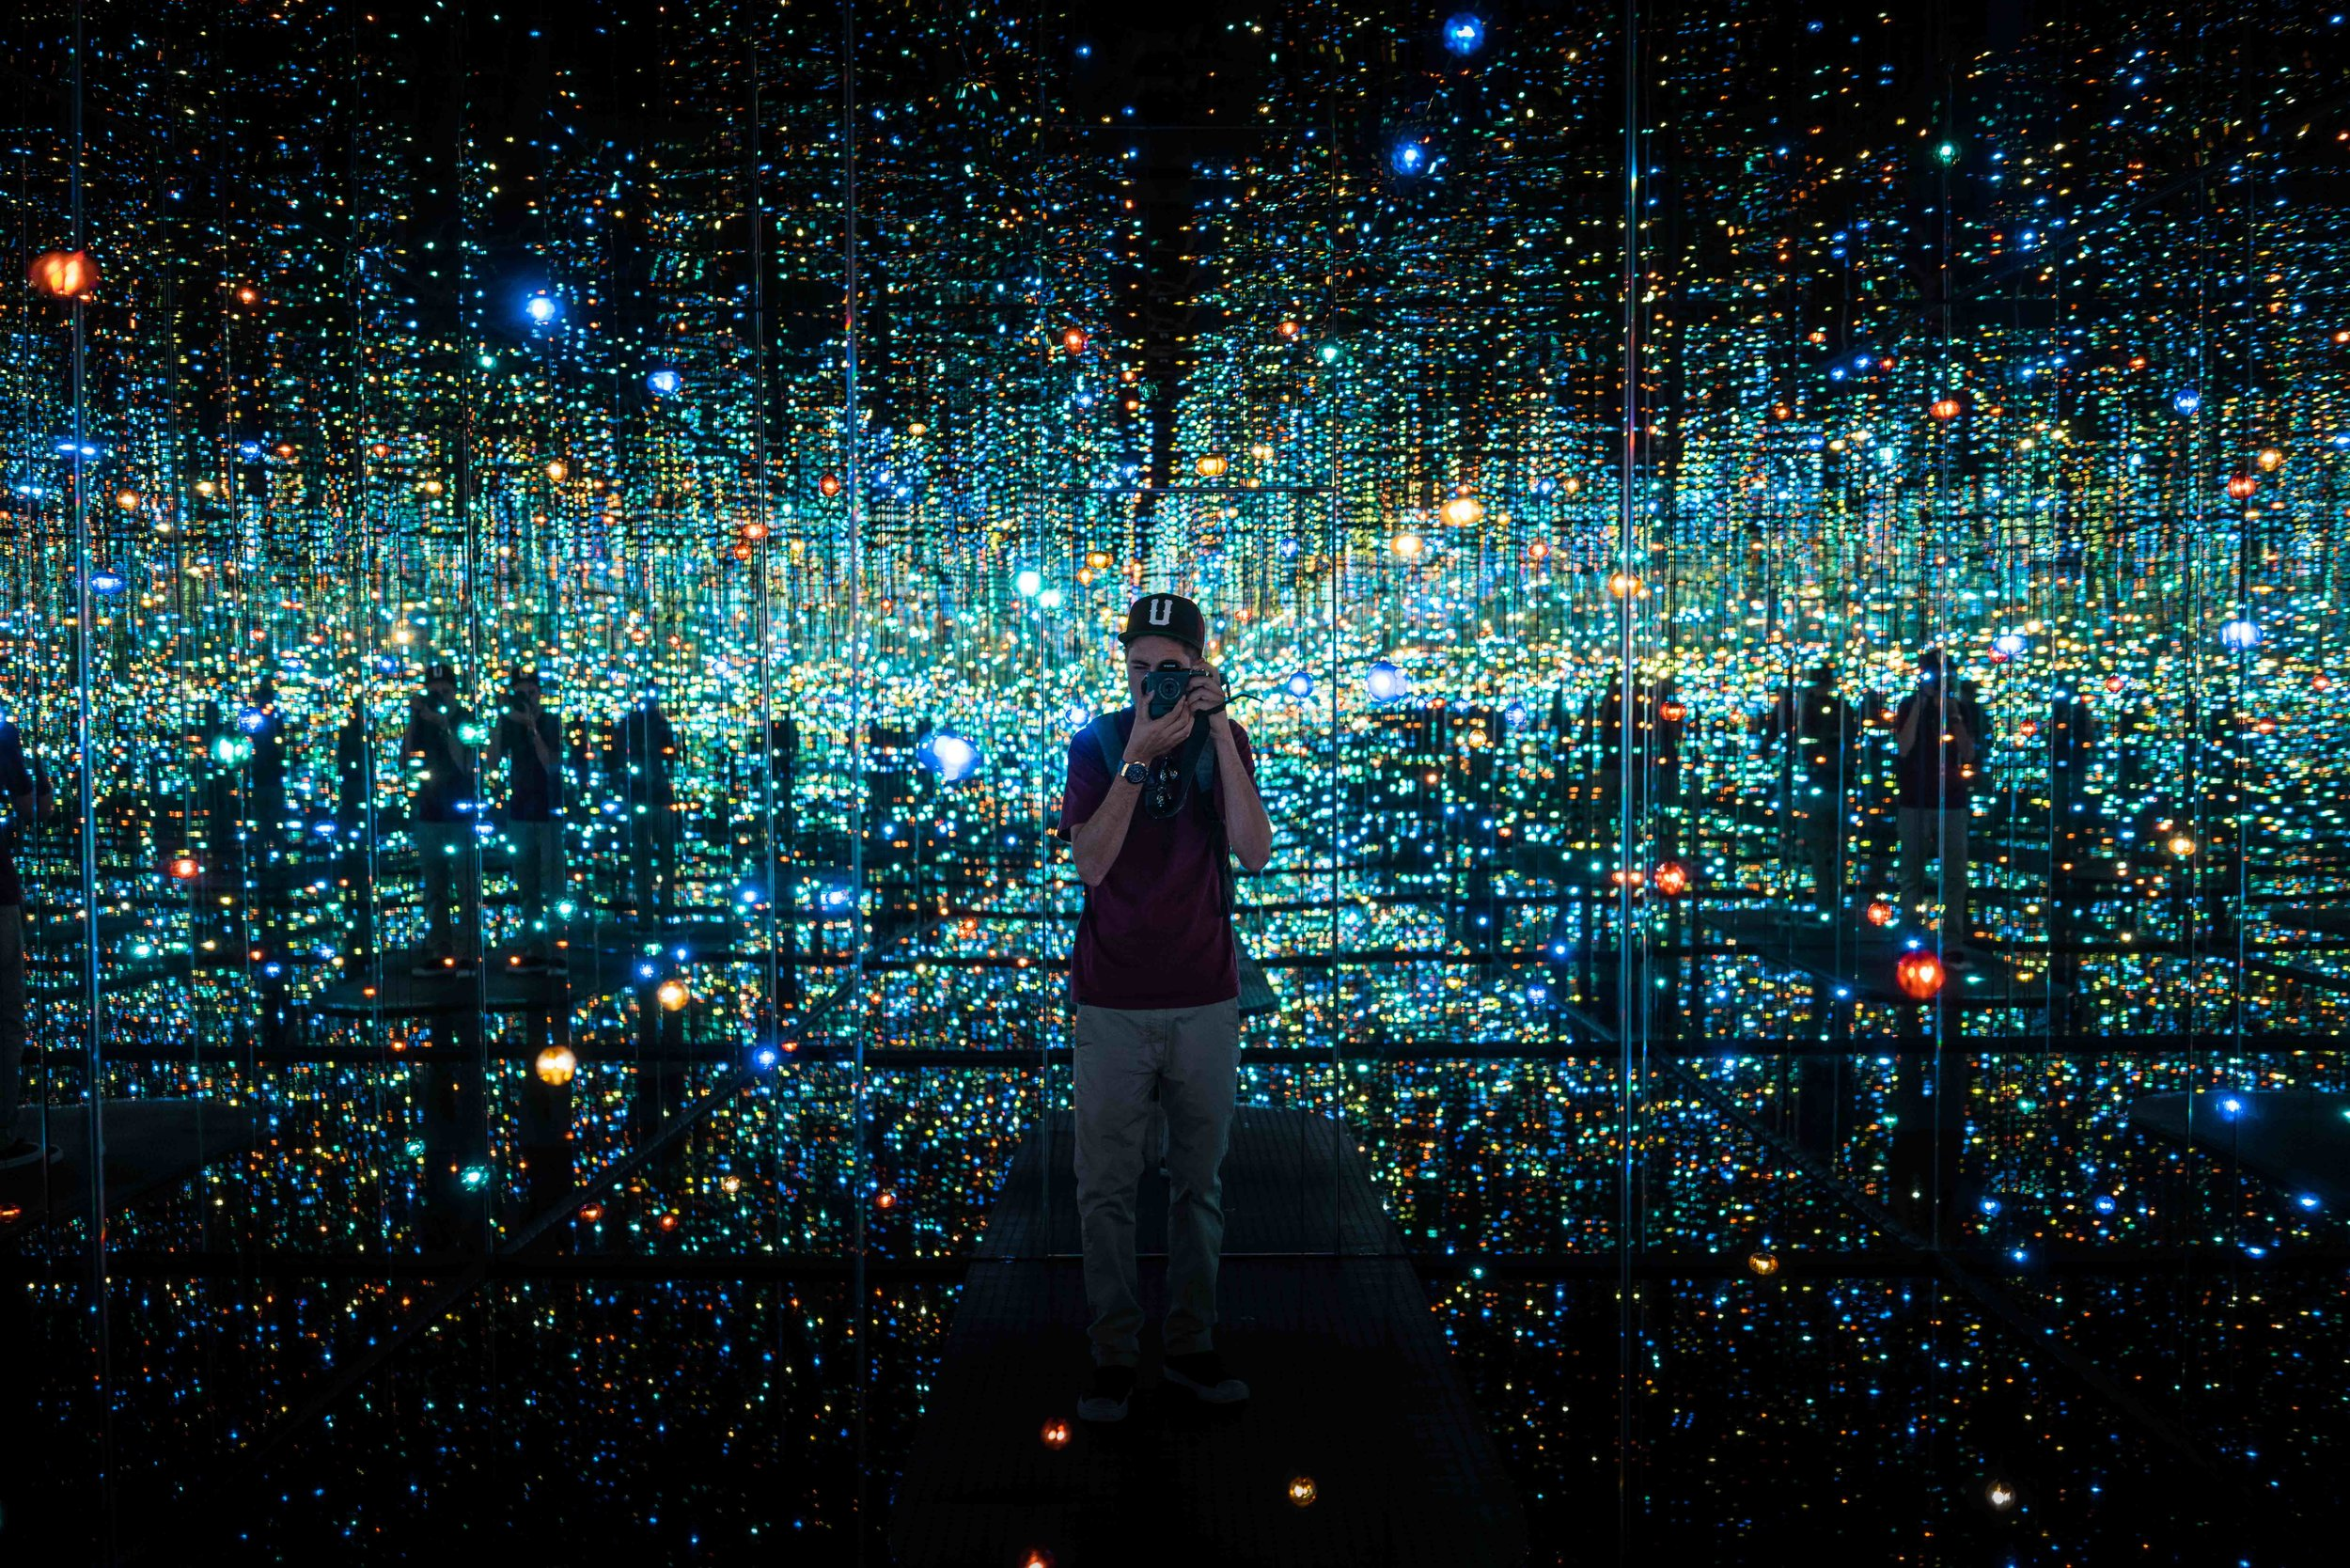 Self-portrait in front of a Yayoi Kusama installation at The Broad Museum, downtown Los Angeles.